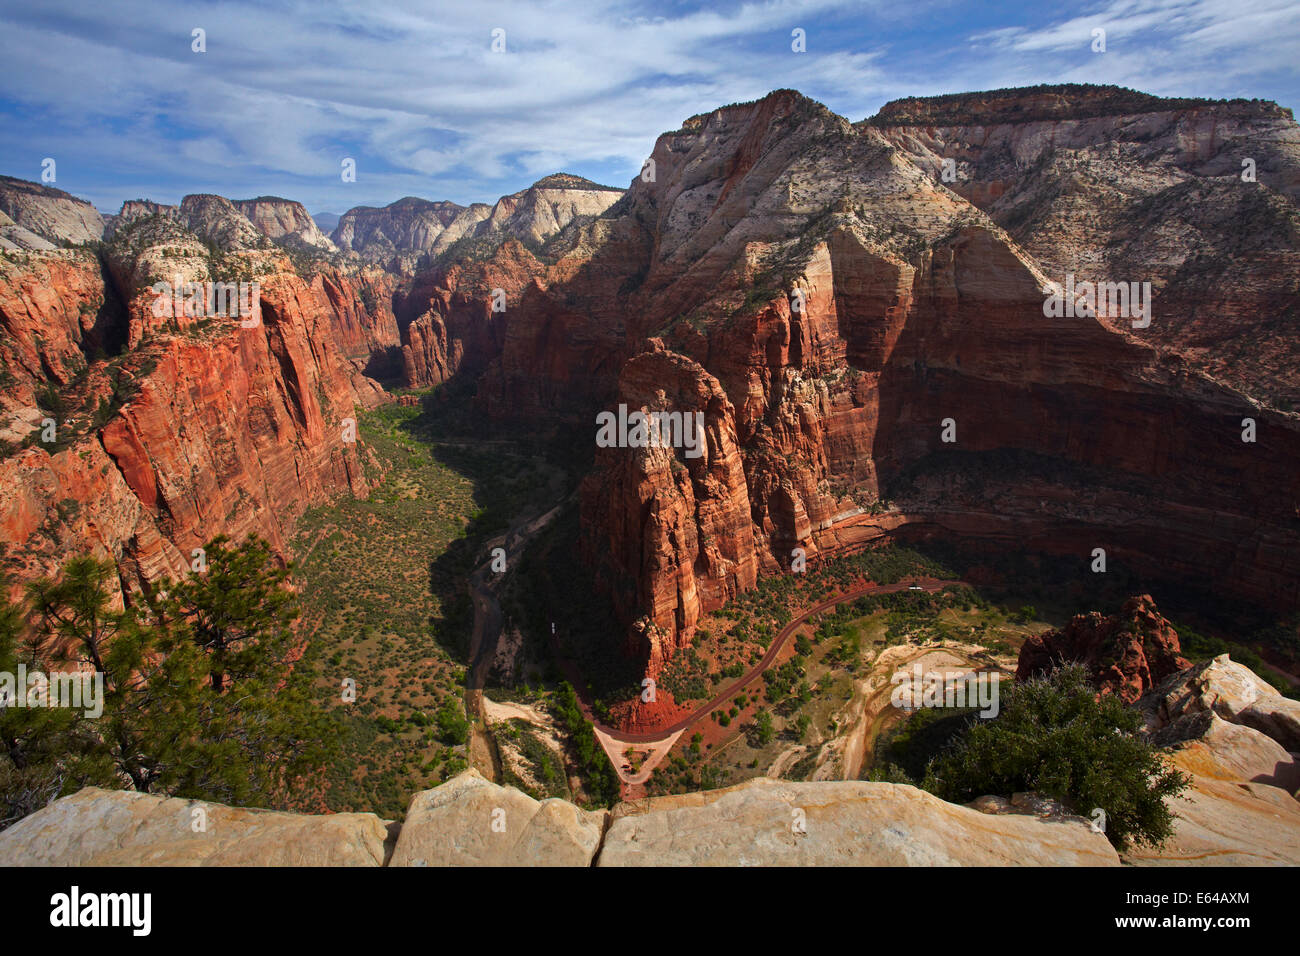 Observation Point, Zion Canyon, Virgin River and Zion Canyon Scenic Drive at Big Bend, seen from the top of Angel's - Stock Image